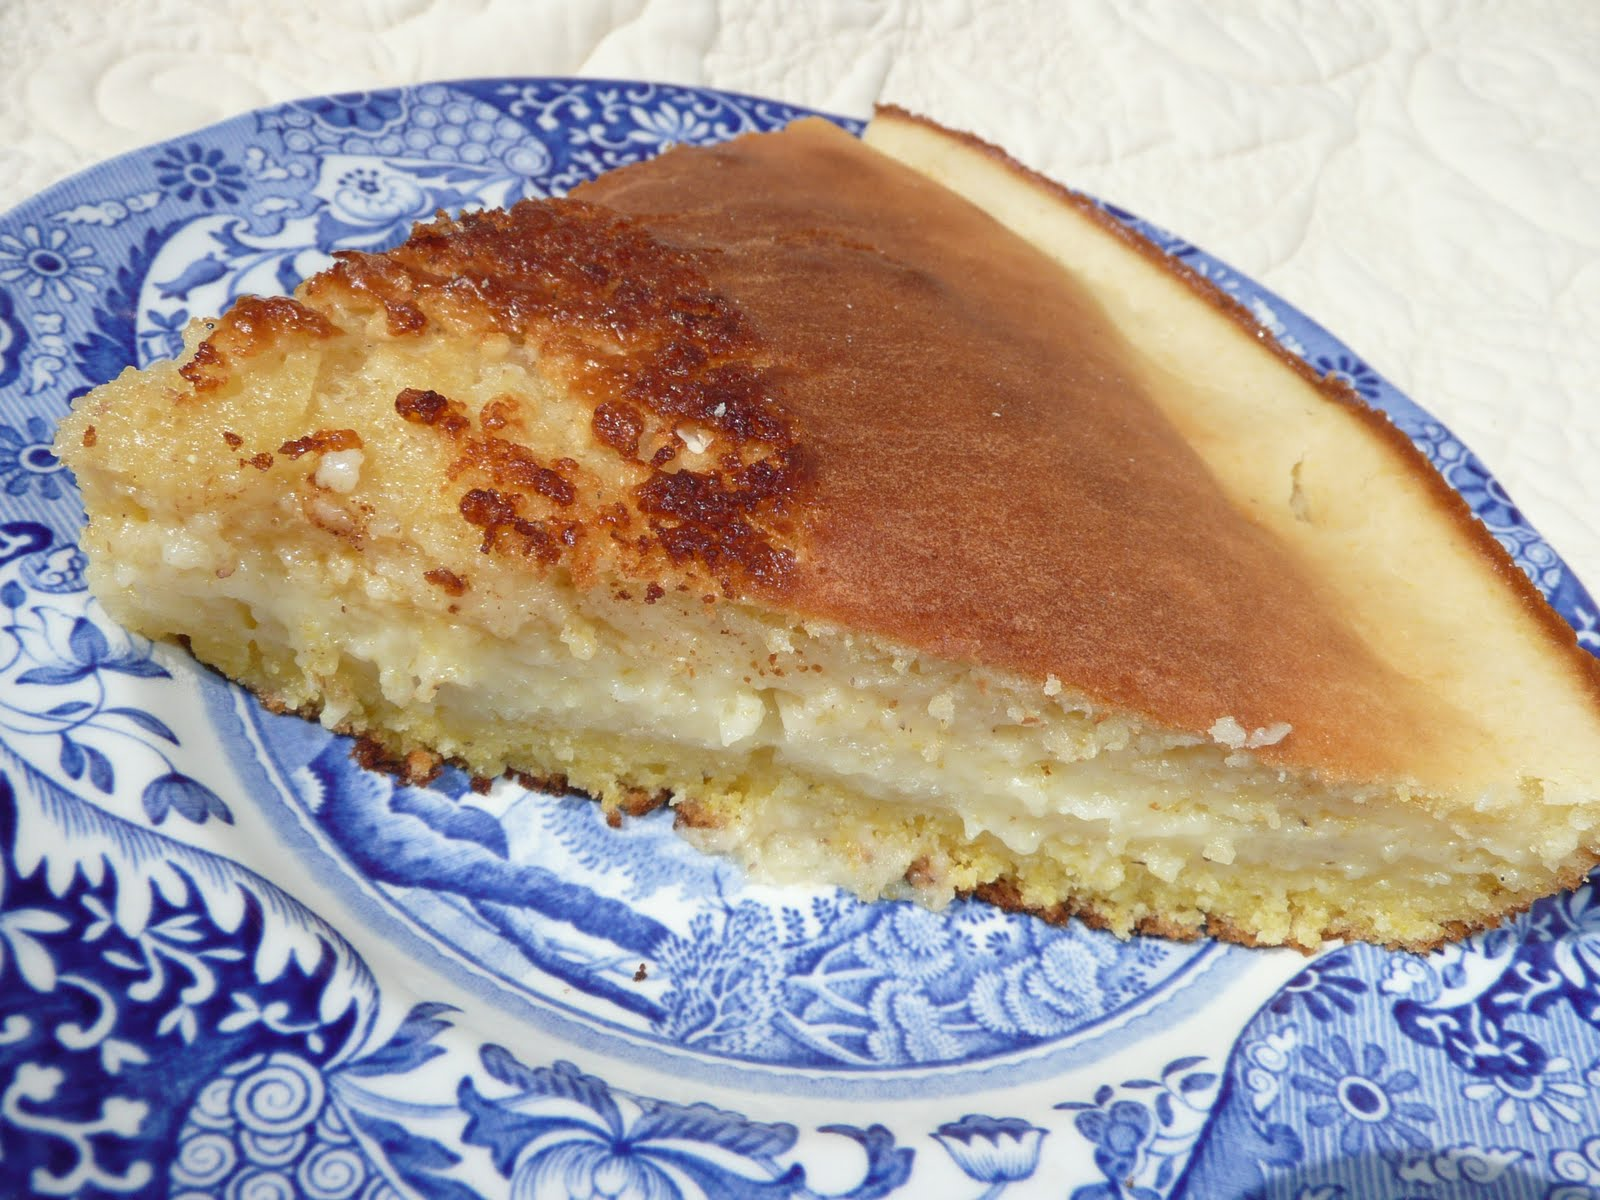 Warm, sweet custard layer forms between cornbread